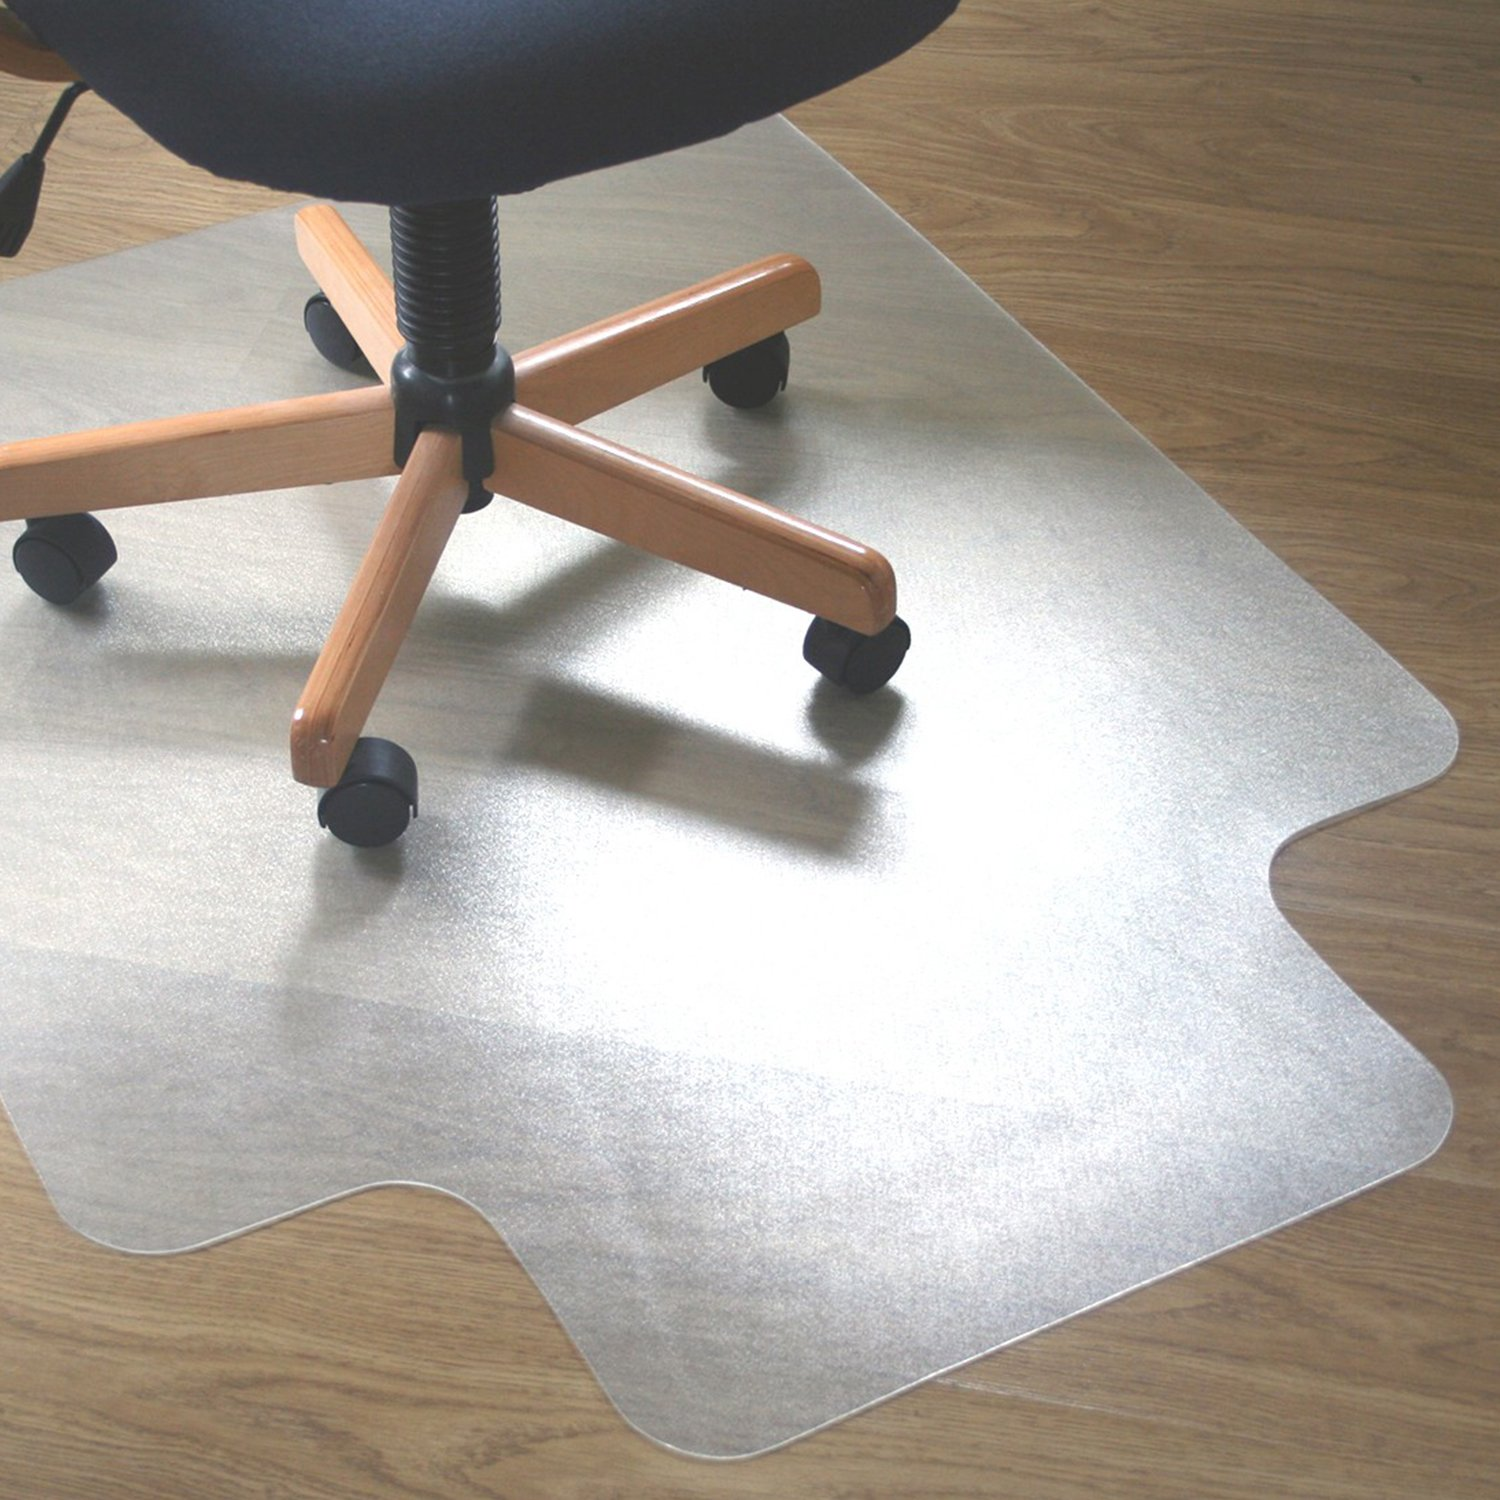 Lutema Clear PVC Plastic Chair Mat for Carpet Or Wood Floors 36'' x 48'' Non-Slip Plastic Mat - Office Floor Protection Plastic Mat with Lip - PVC Plastic Mat for Office Chair (1 Pack Smooth Back)